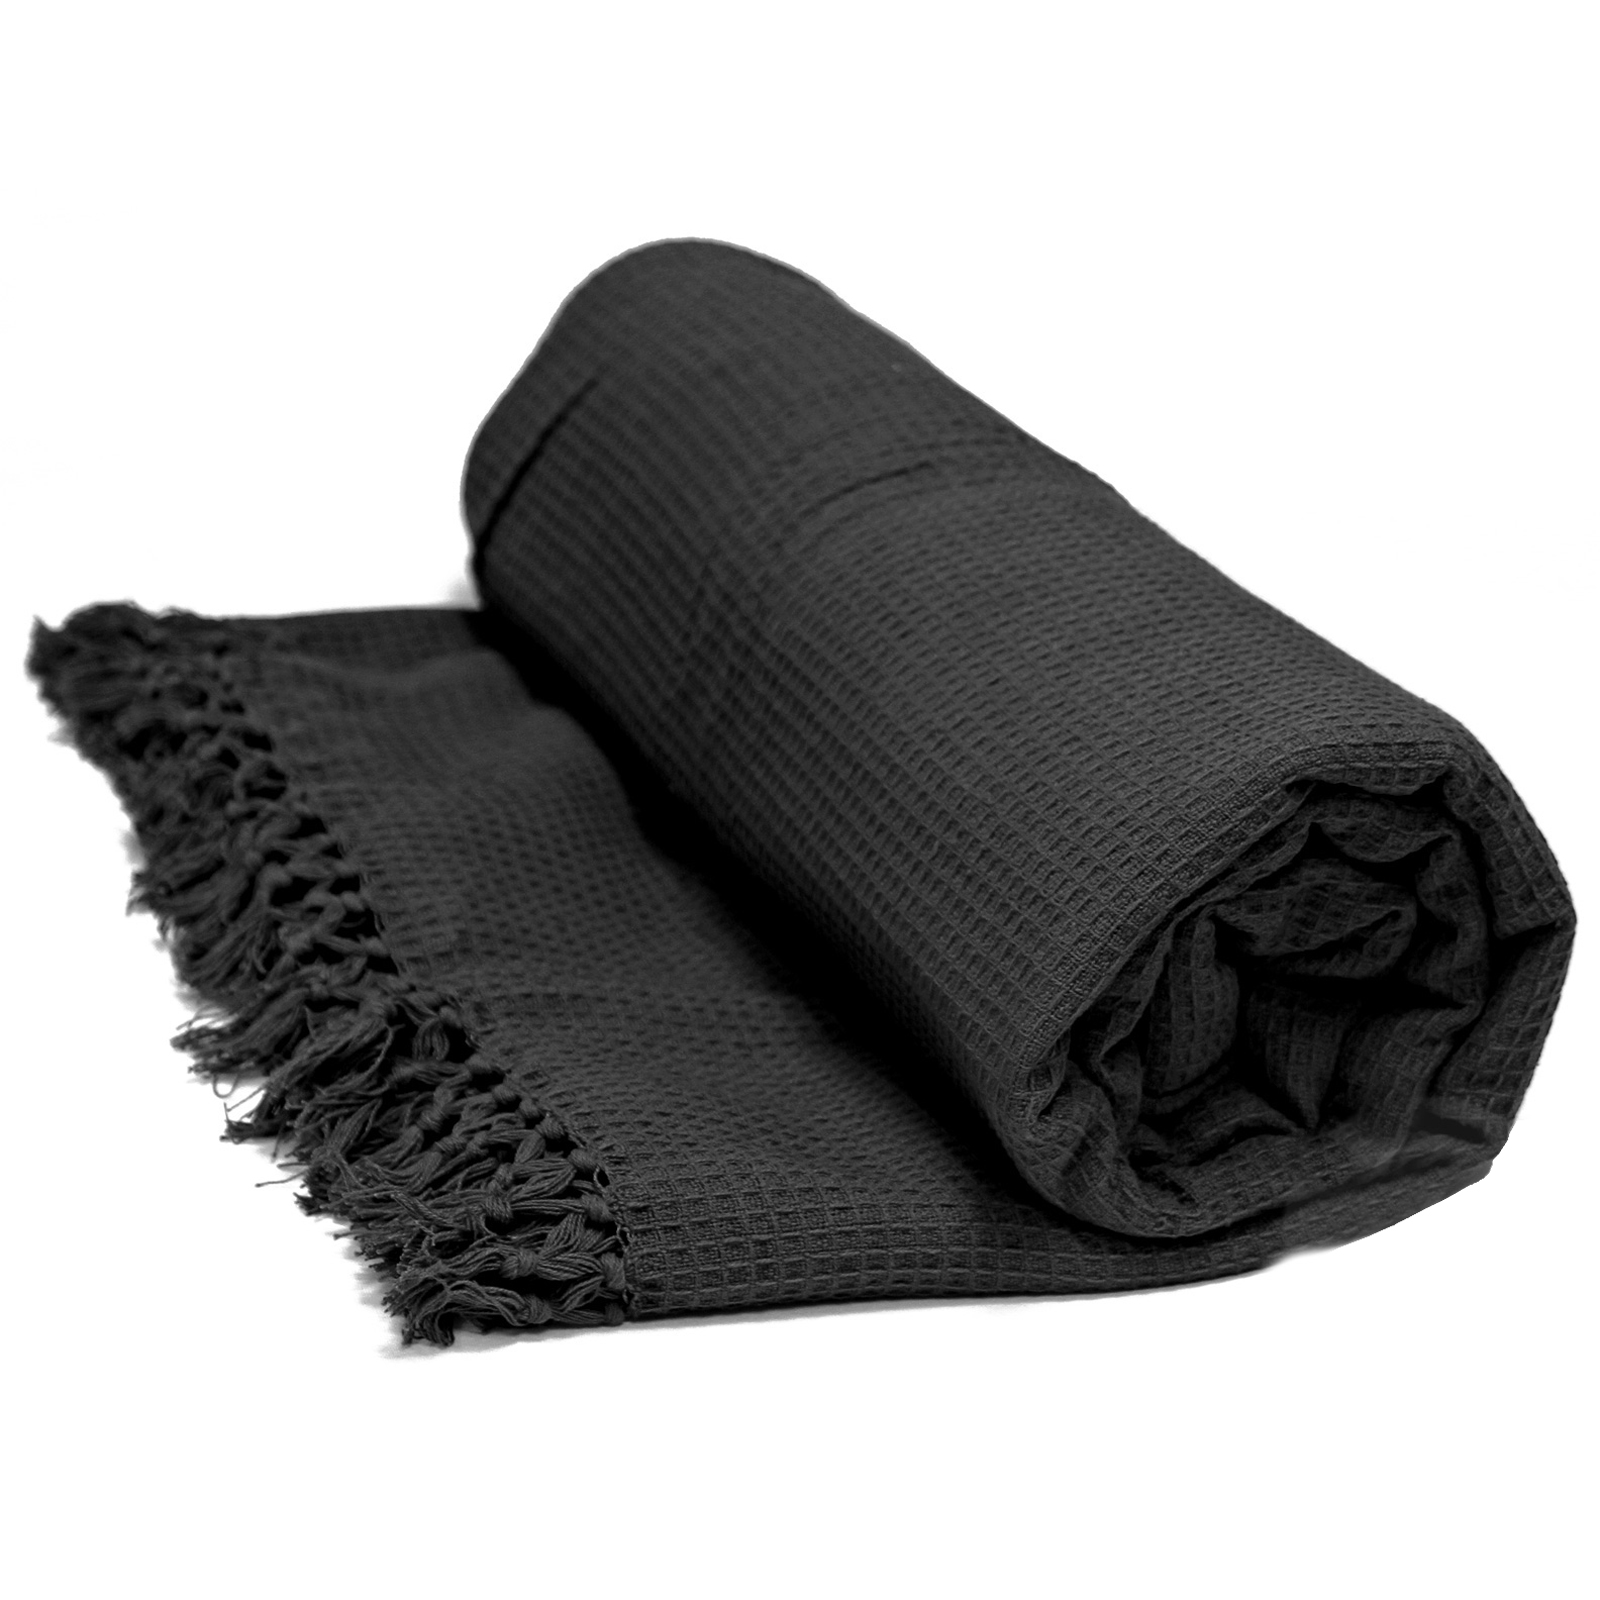 Honeycomb 100 Cotton Throws Extra Large Luxury Thermal  : rp honeycomb black main from www.ebay.co.uk size 1600 x 1600 jpeg 551kB